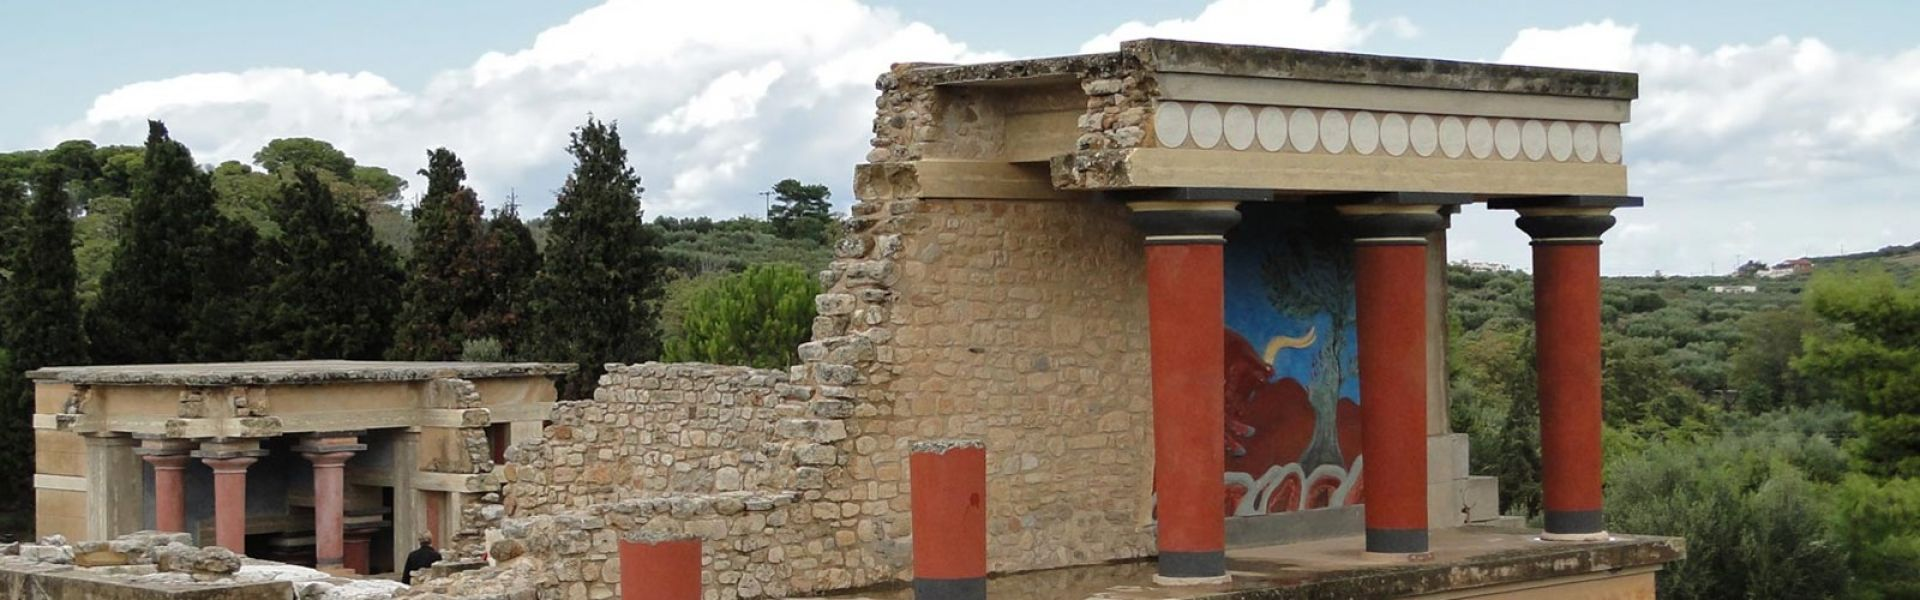 Knossos palace - Heraklion city